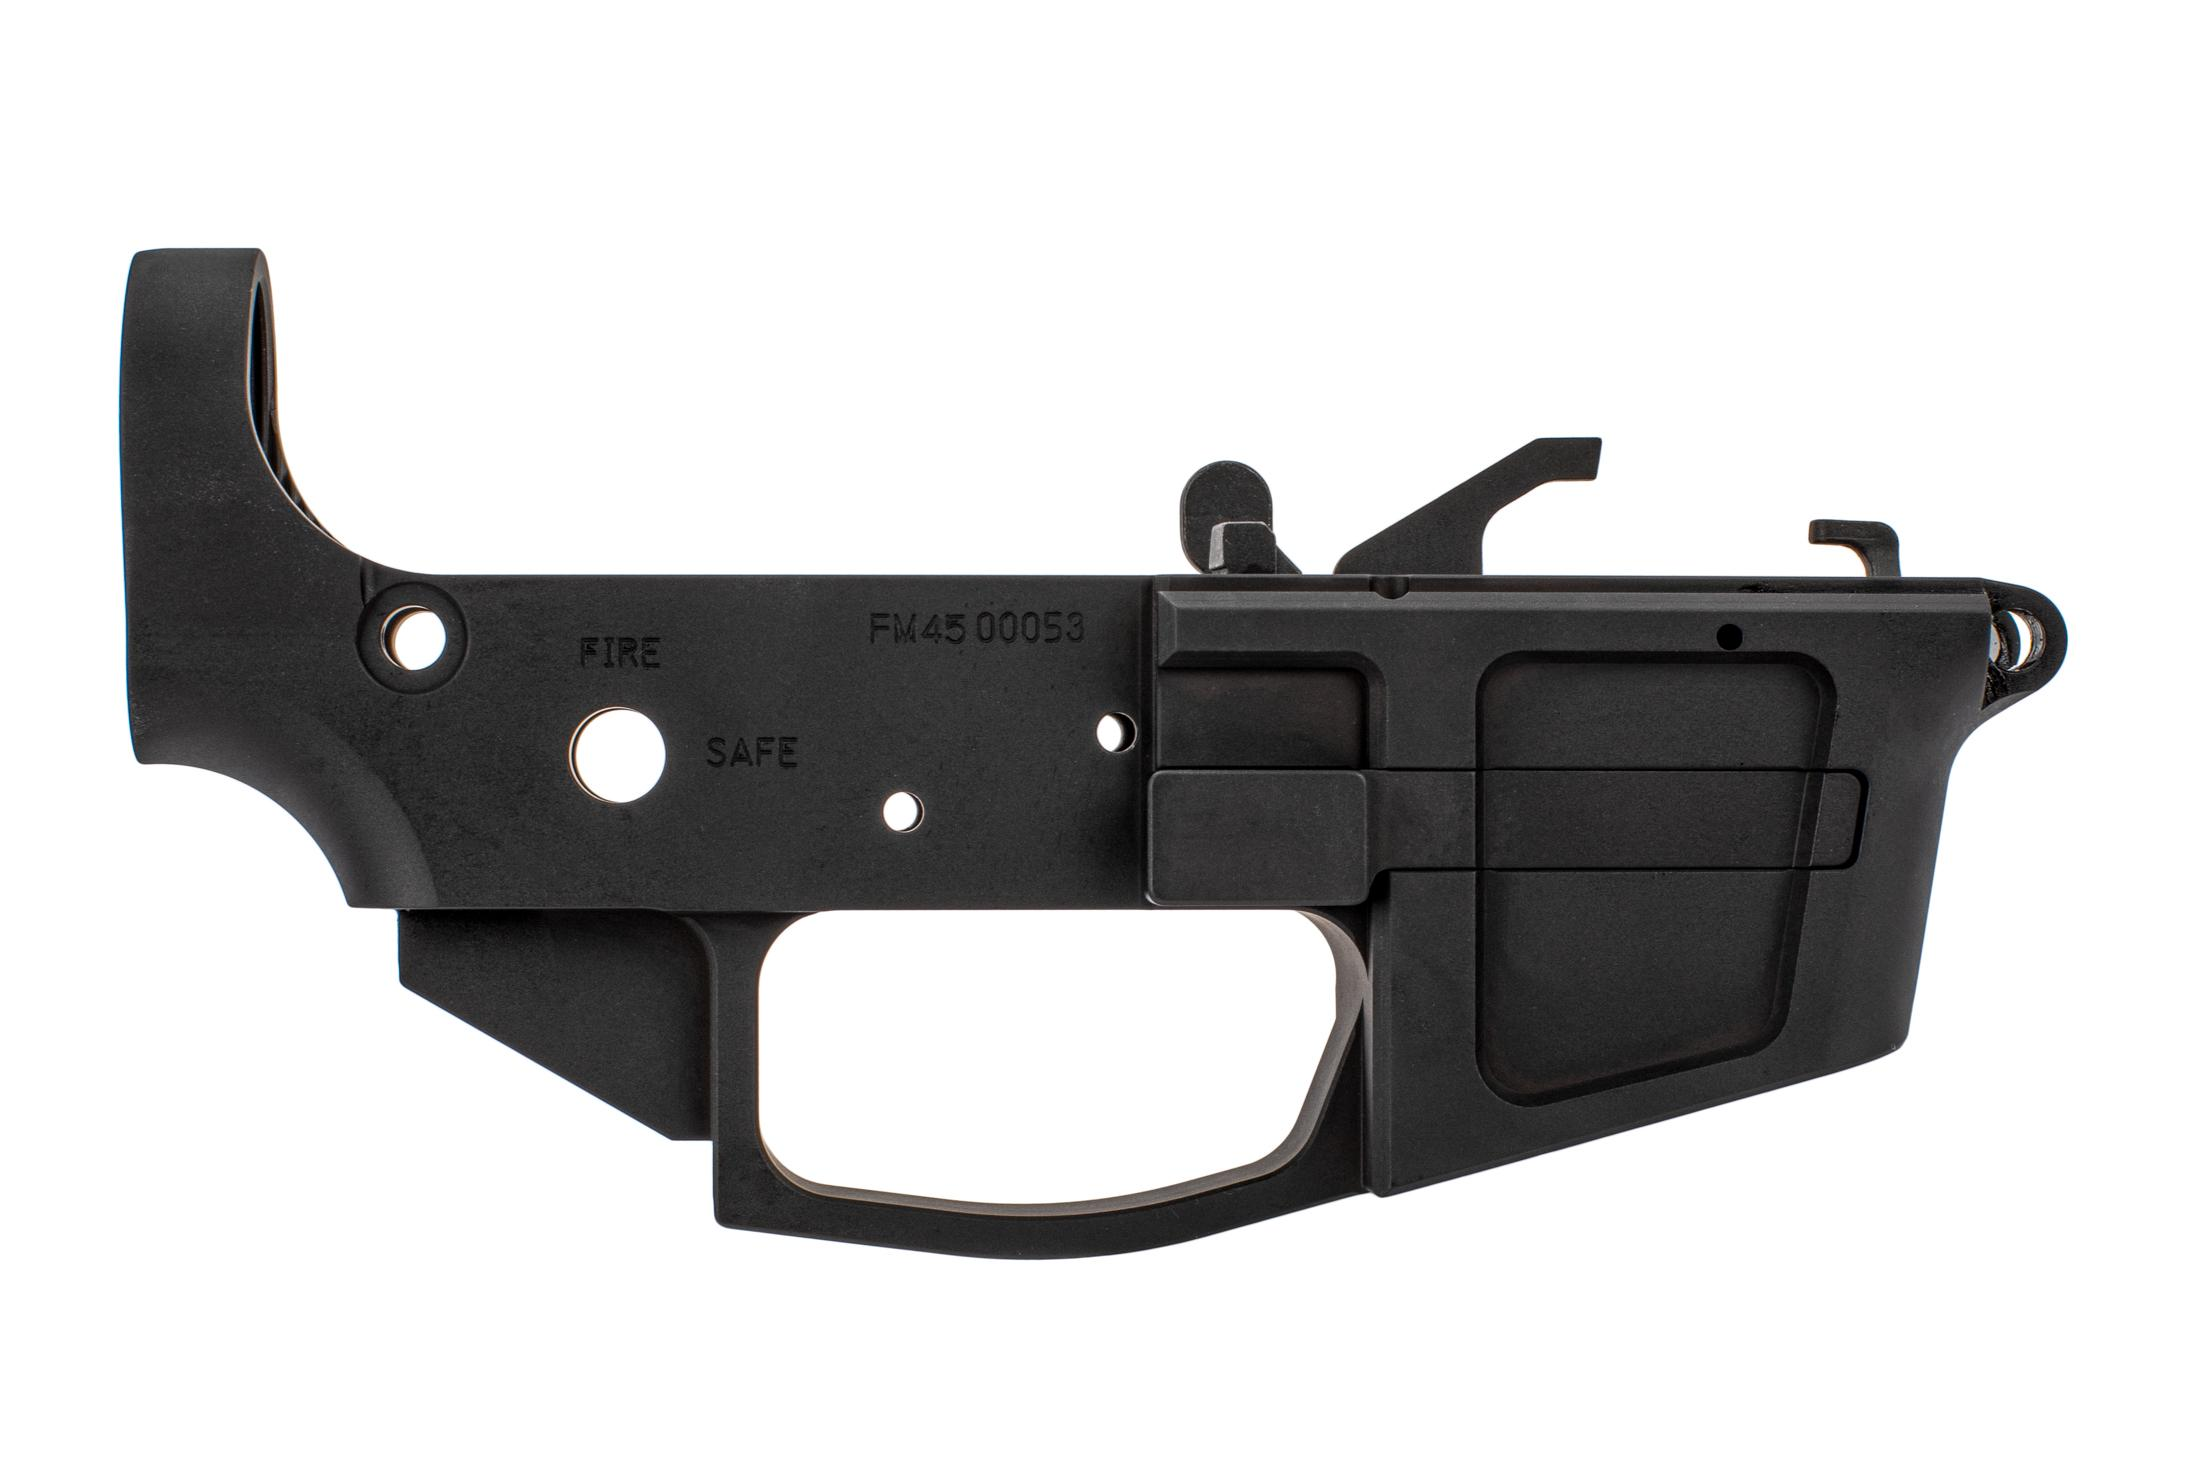 Foxtrot Mike Products .45 ACP Lower - Stripped (Non California Compliant)